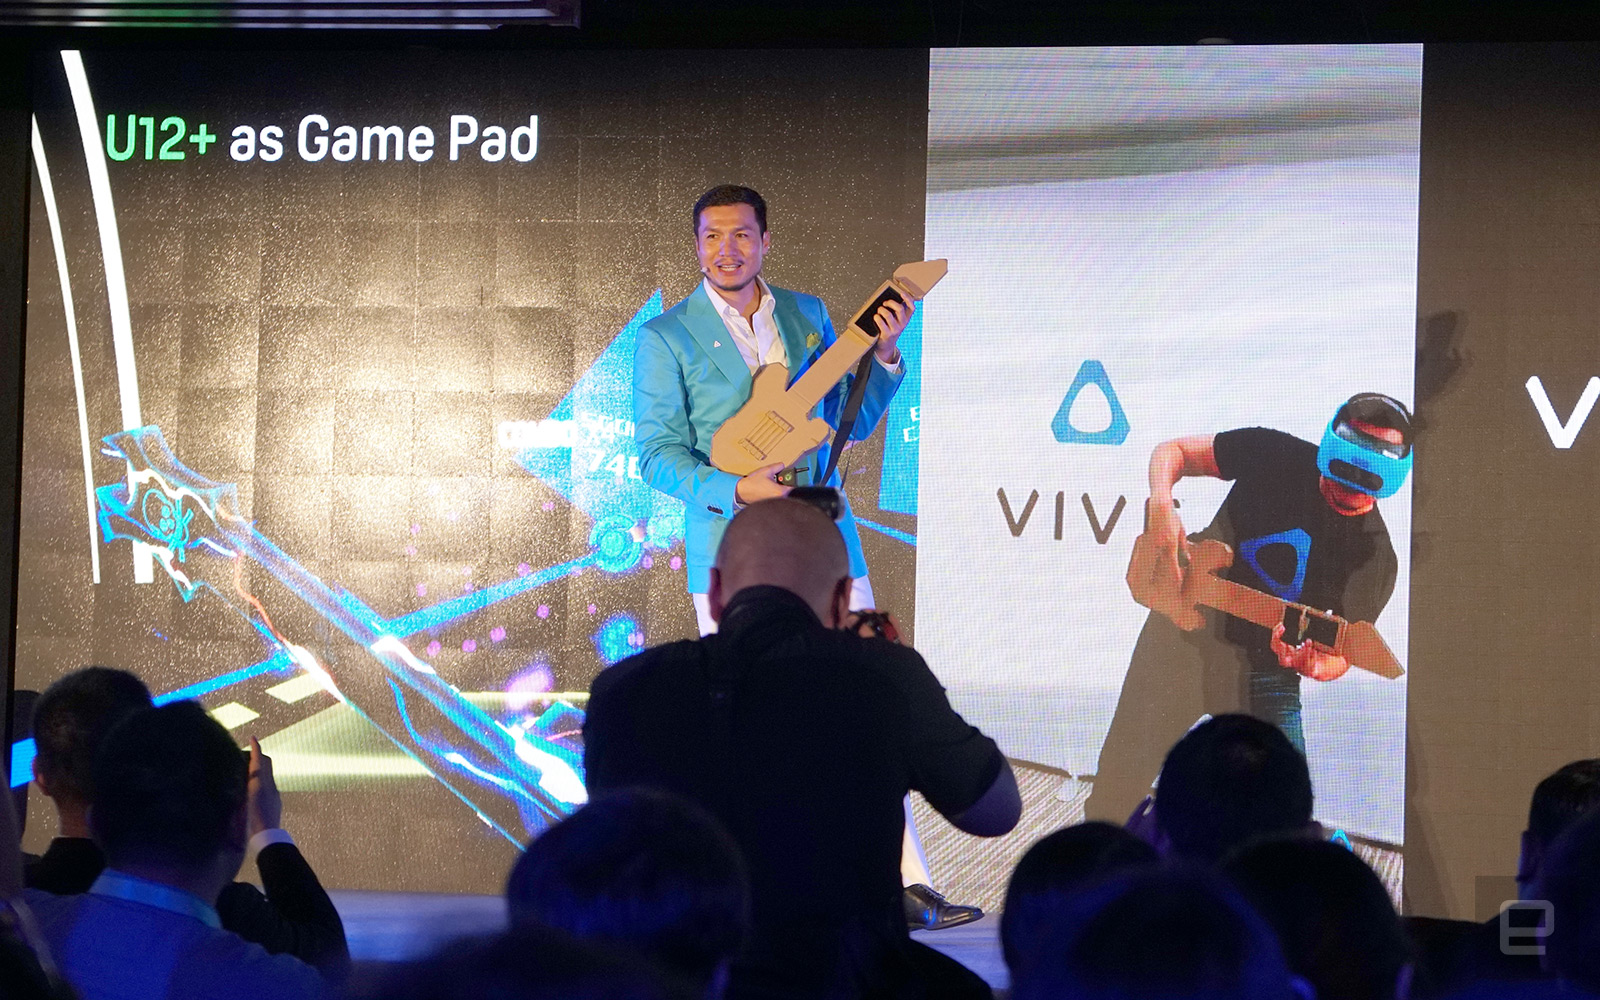 Vive Focus VR update lets you take calls from the real world - F3News